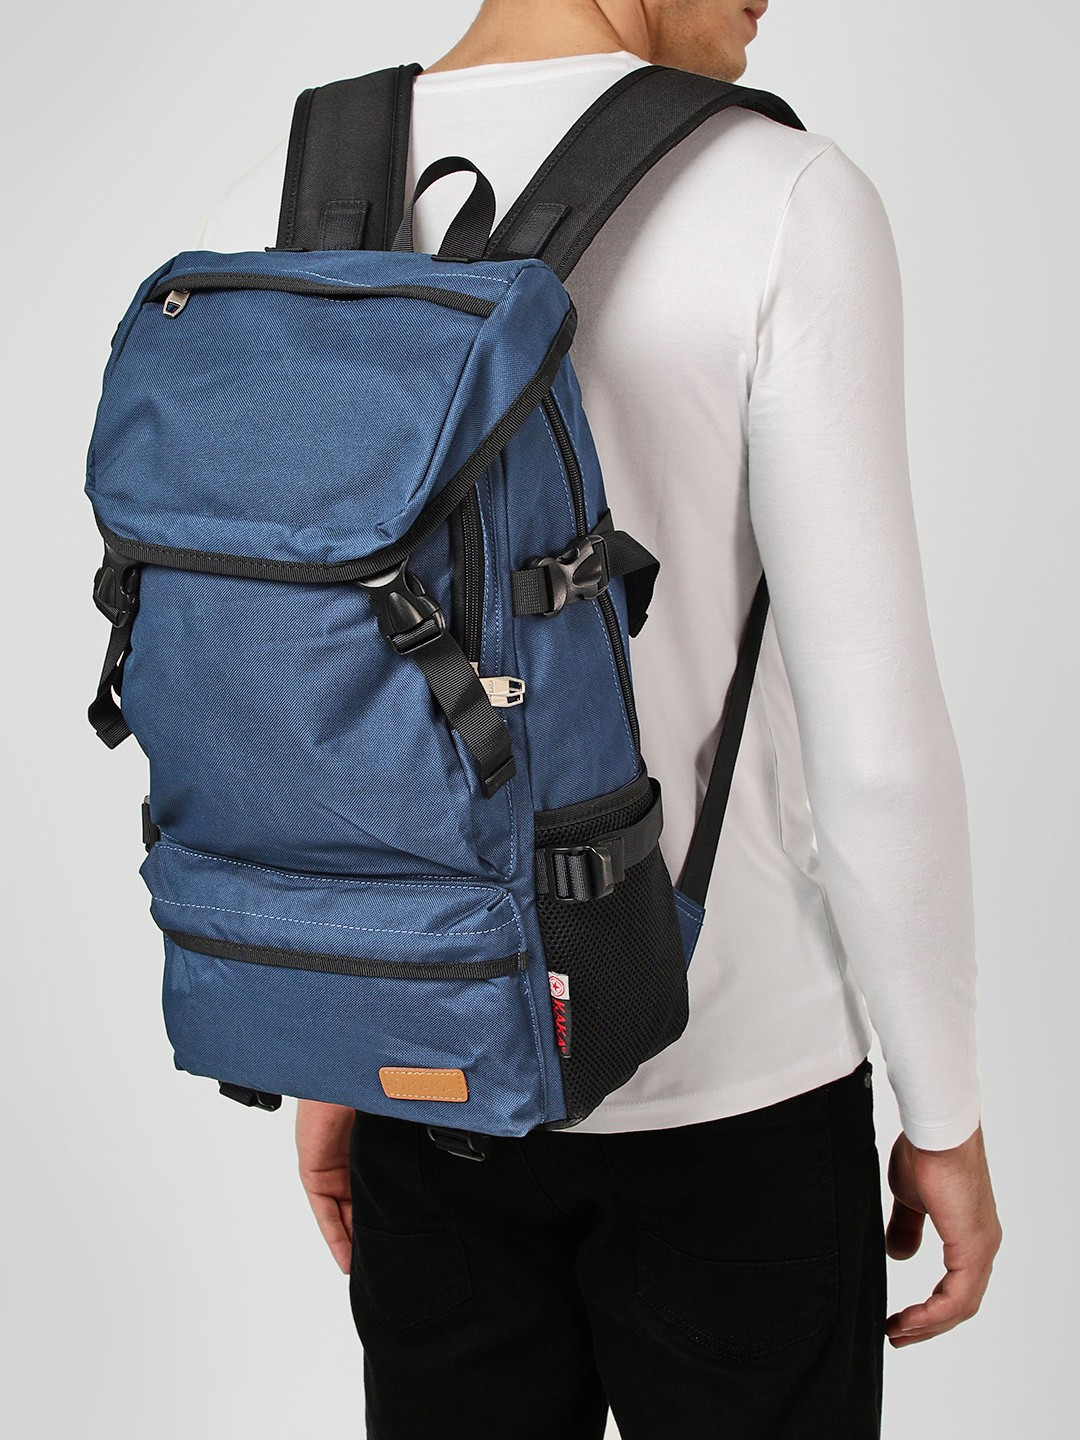 KAKA Blue Sports Backpack 1